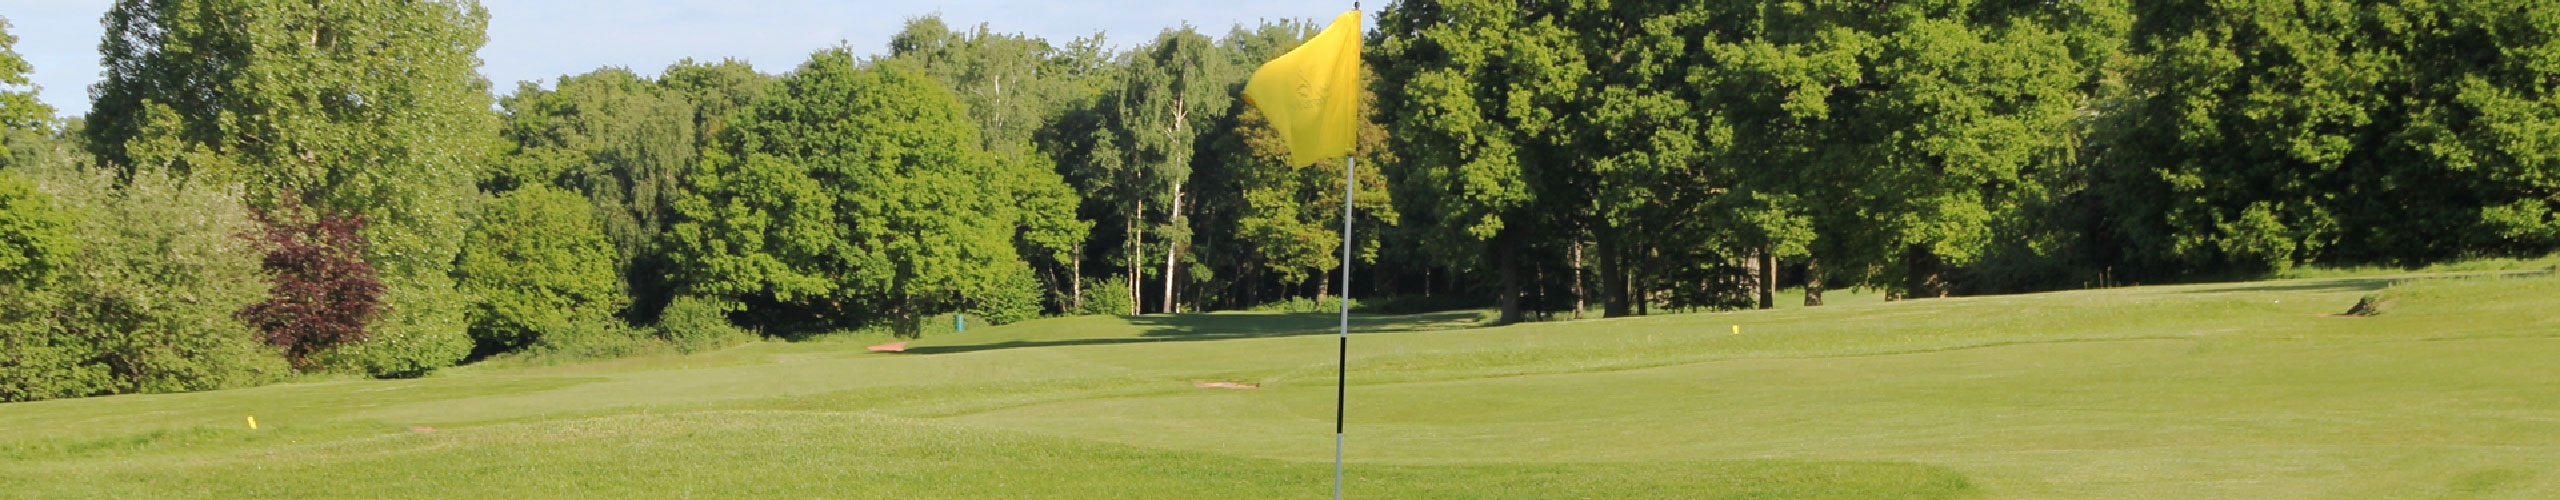 Golf course yellow flag